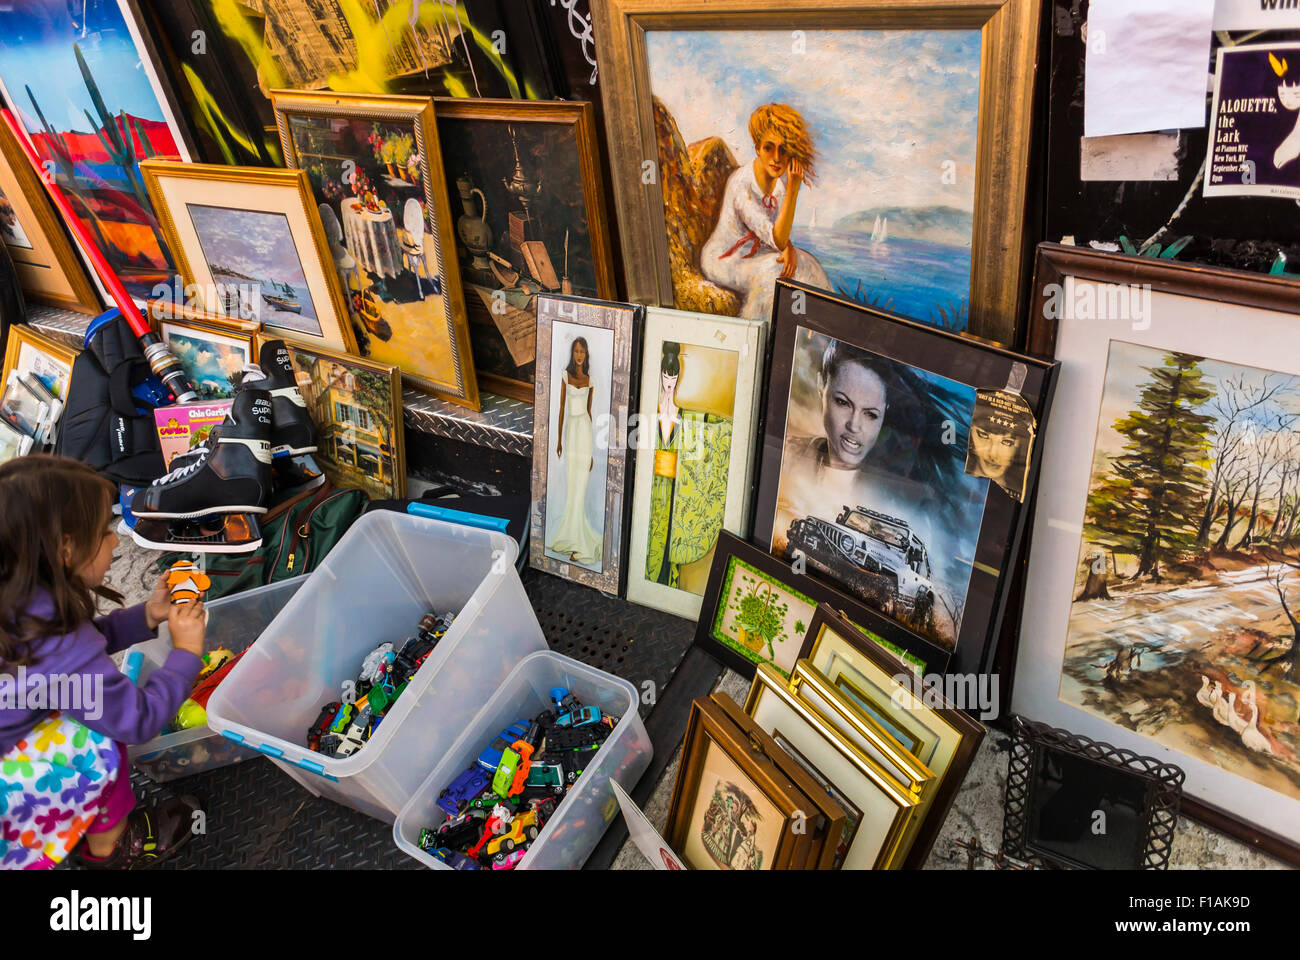 New York City, USA, Old Picture Frames on Display in Vintage Flea ...